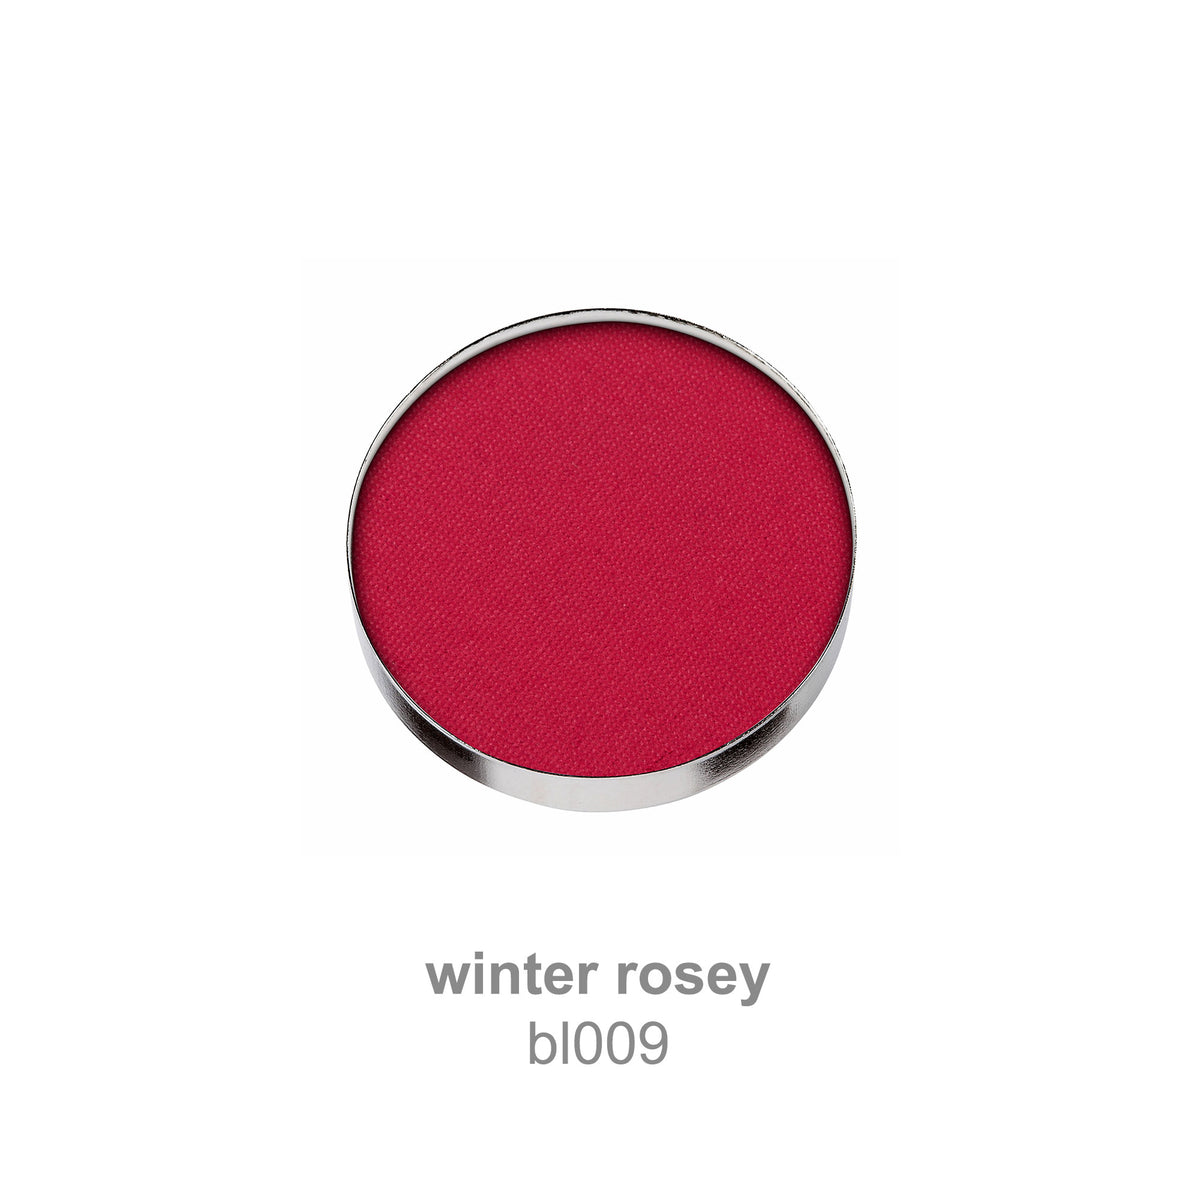 winter rosey bl009